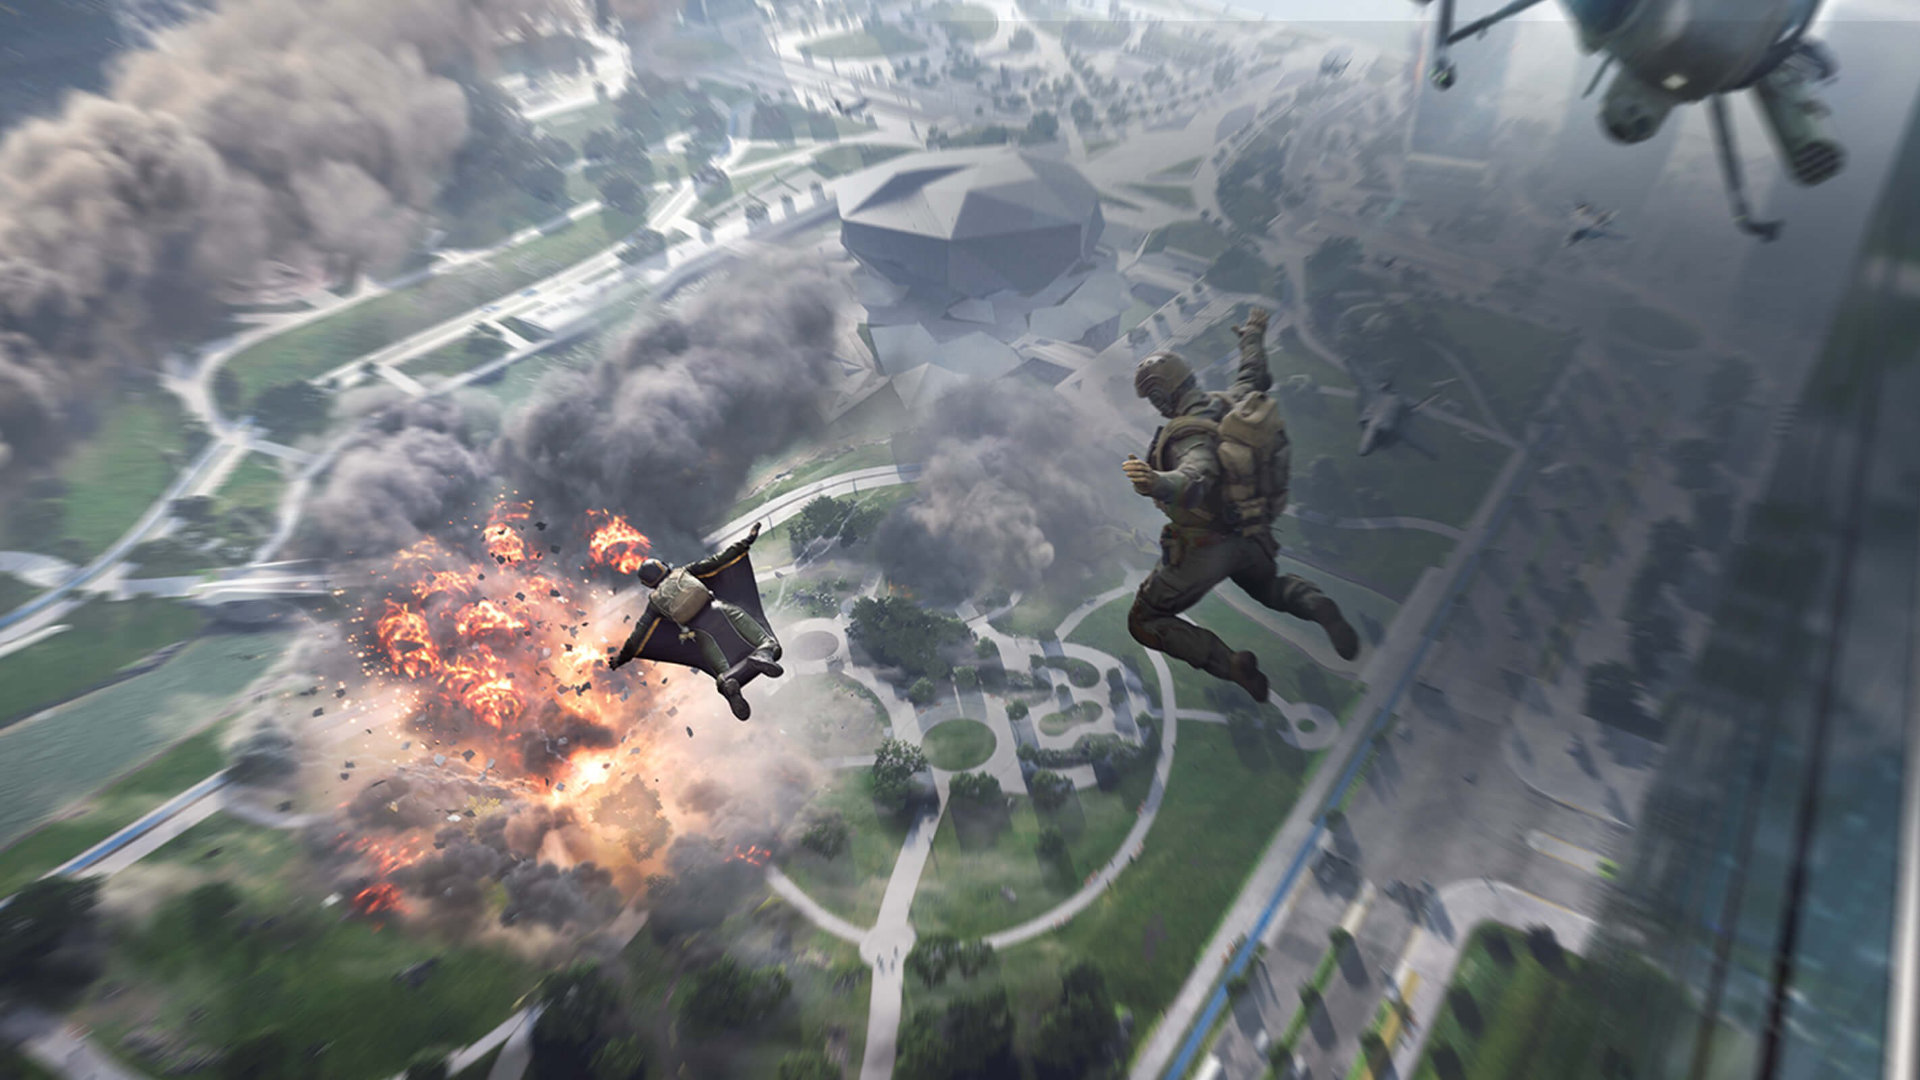 Battlefield 2042 system requirements aren't too taxing for most gaming PCs